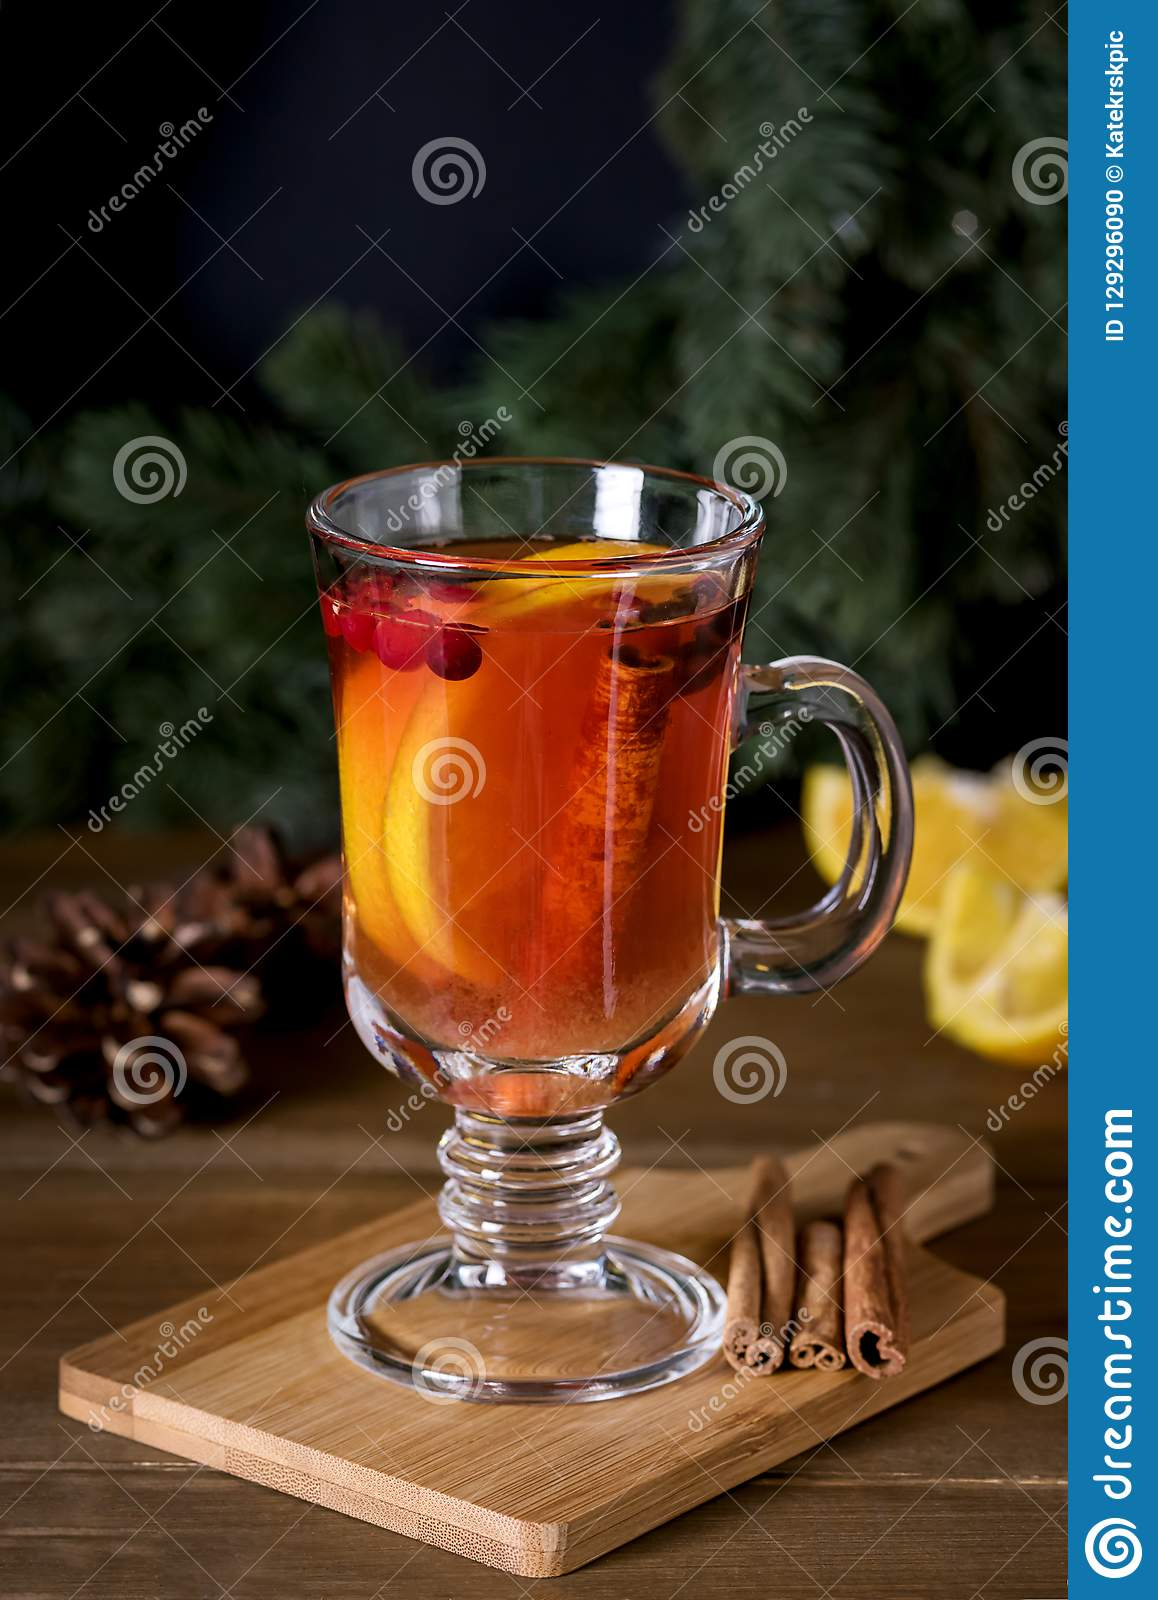 Mulled Cider with Added Spices and Citrus Delicious and Warming Hot Drink Winter Christmas Holidays Drink Vertical